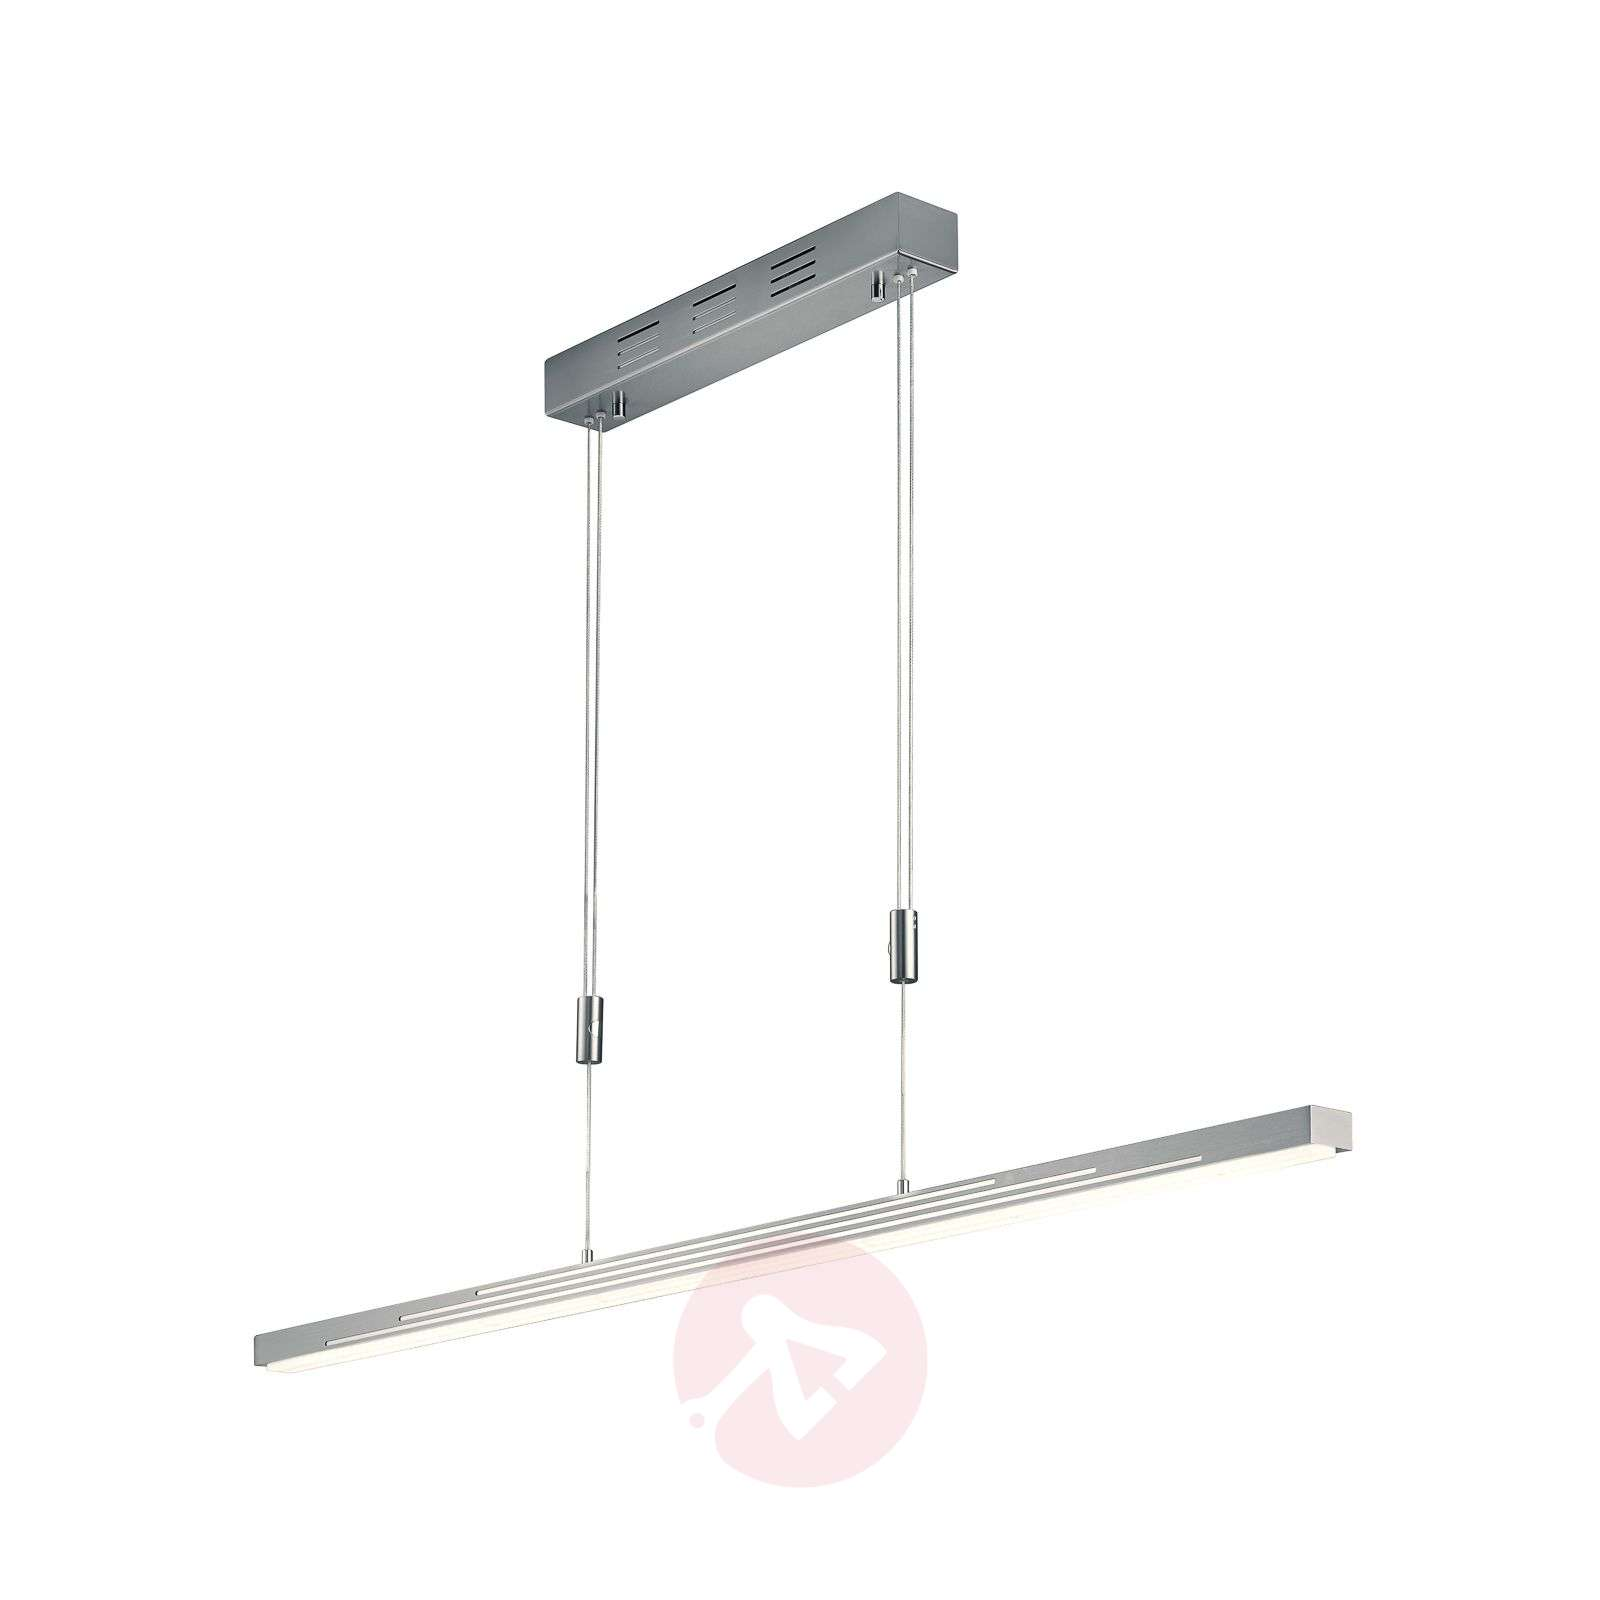 BANKAMP Swing lampa wisząca LED, Smart Home